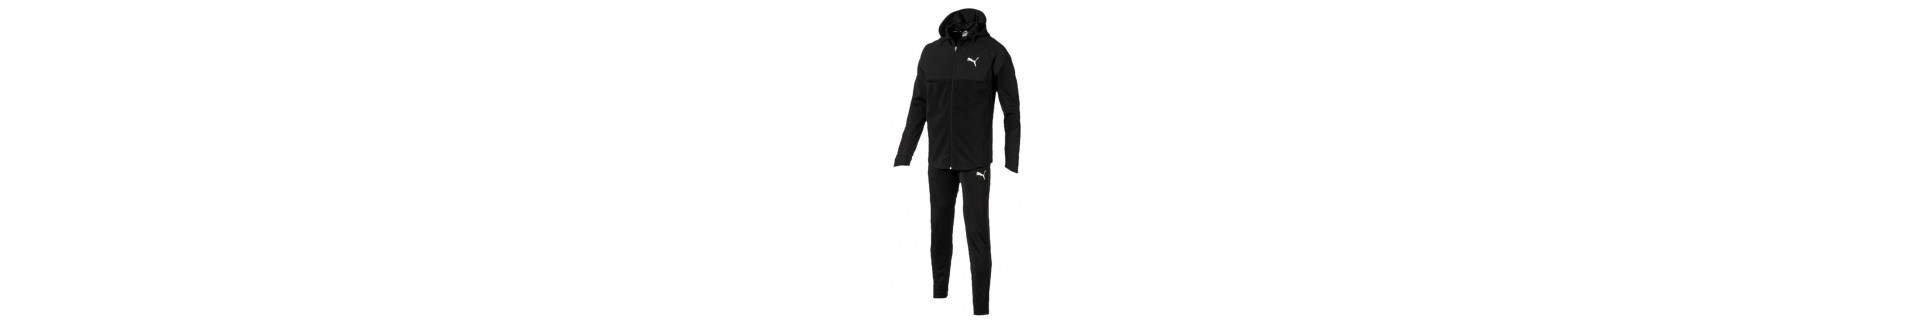 Tracksuit for men Adidas, Puma, Nike, Reebok